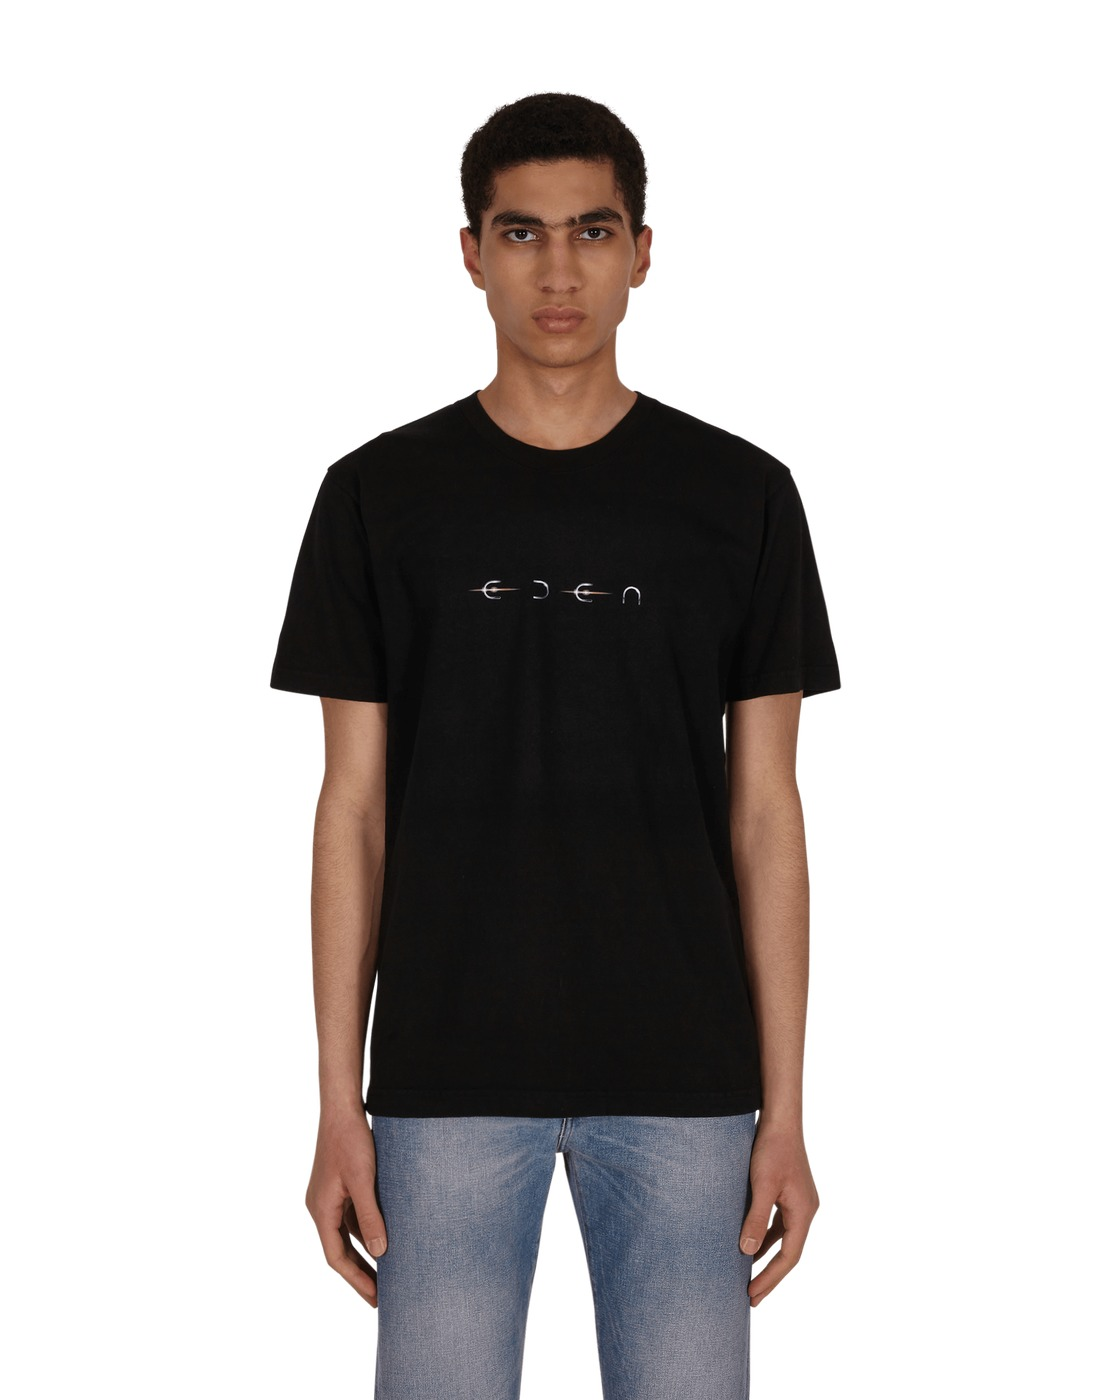 Photo: Eden Power Corp 2020 Recycled T Shirt Black / White